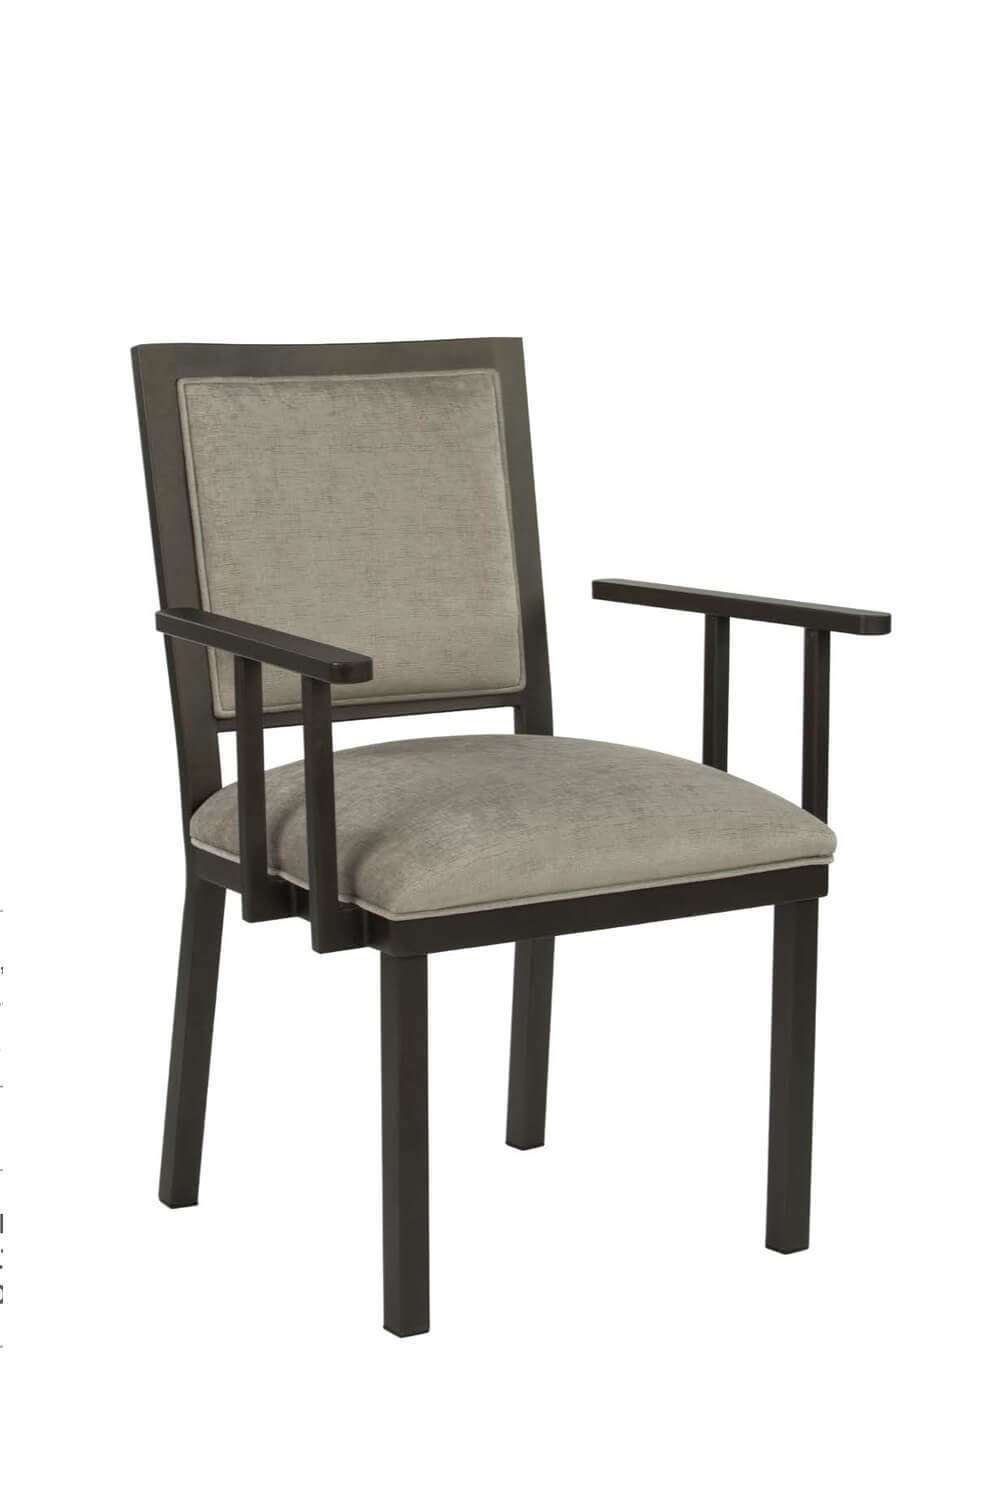 Windsor Upholstered Dining Chair with Arms